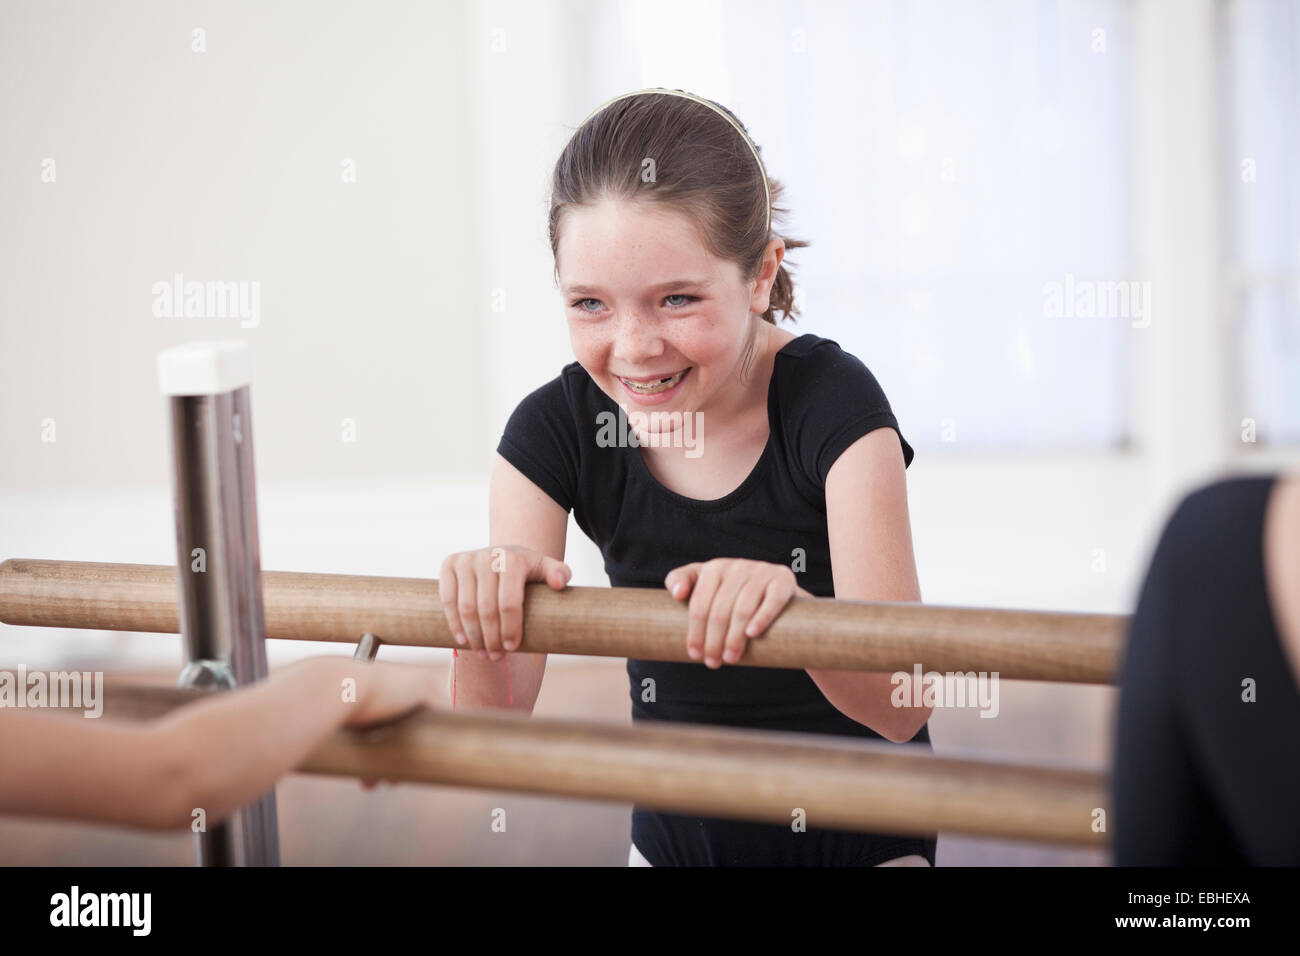 Girl laughing whilst at the barre in ballet school - Stock Image